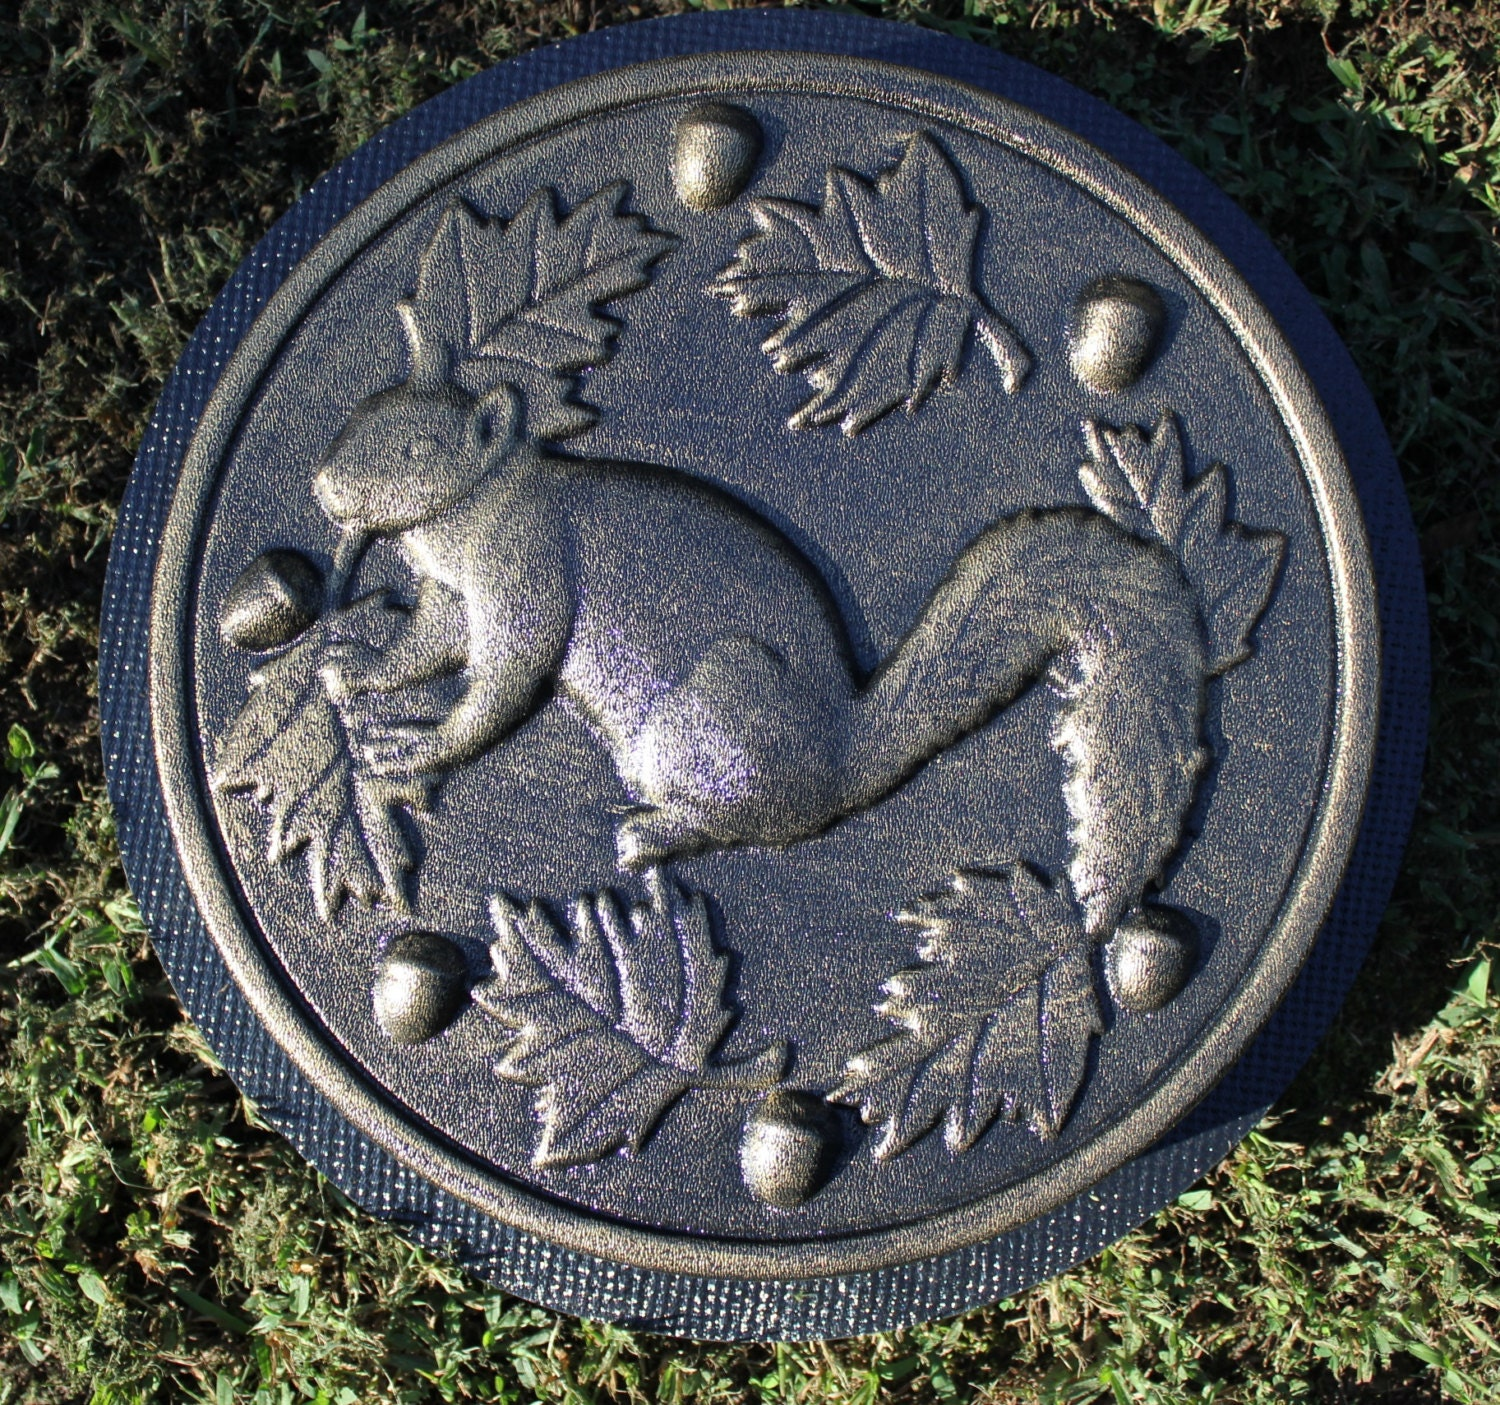 Garden Cement Molds: Squirrel Stepping Stone Mold Concrete Cement Mould Garden